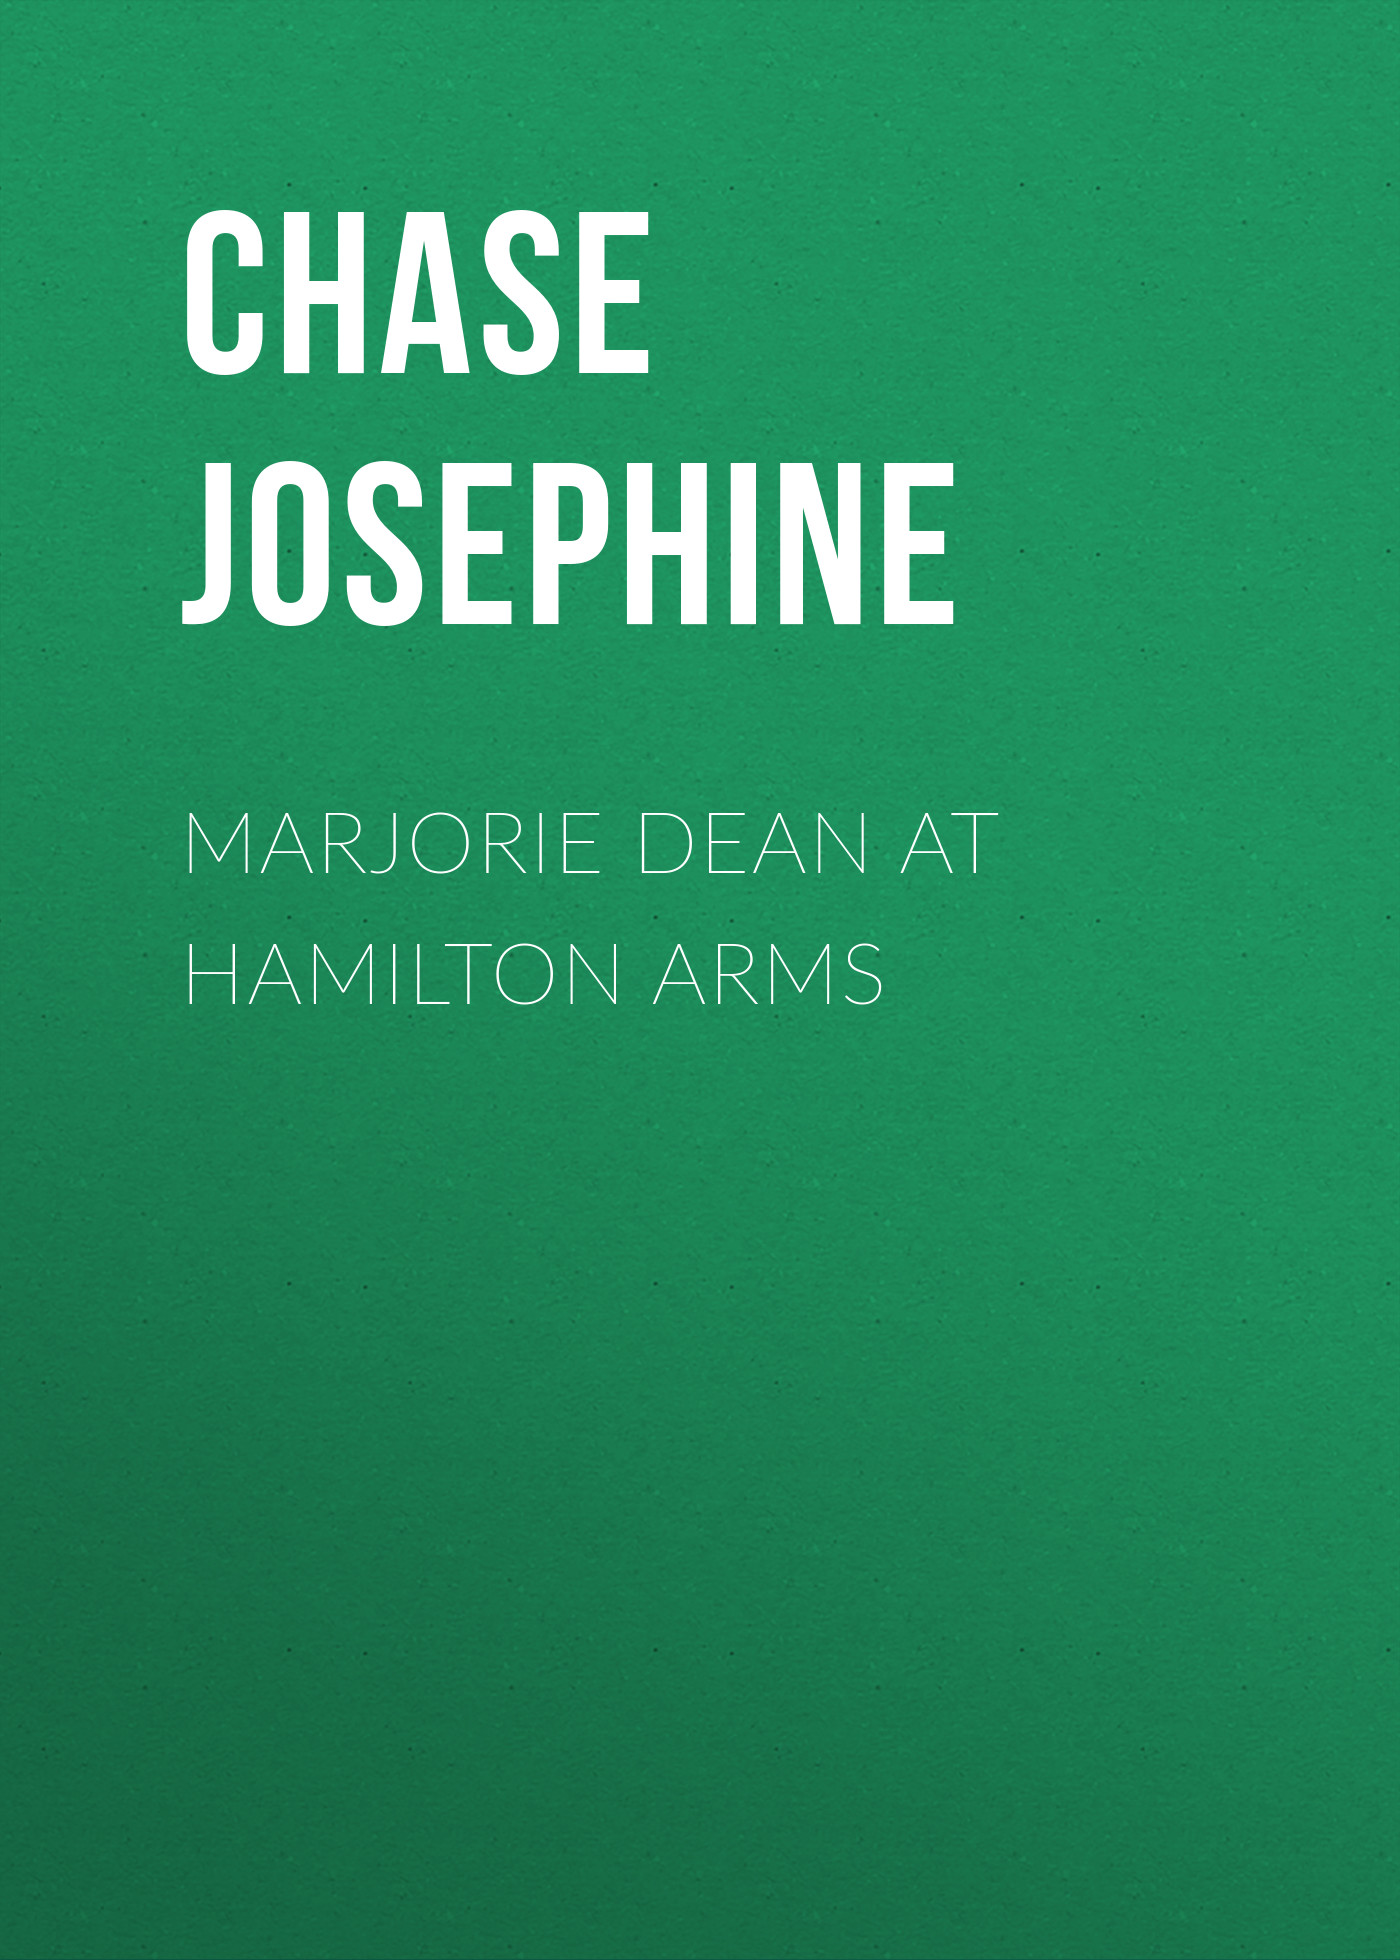 Chase Josephine Marjorie Dean at Hamilton Arms men at arms